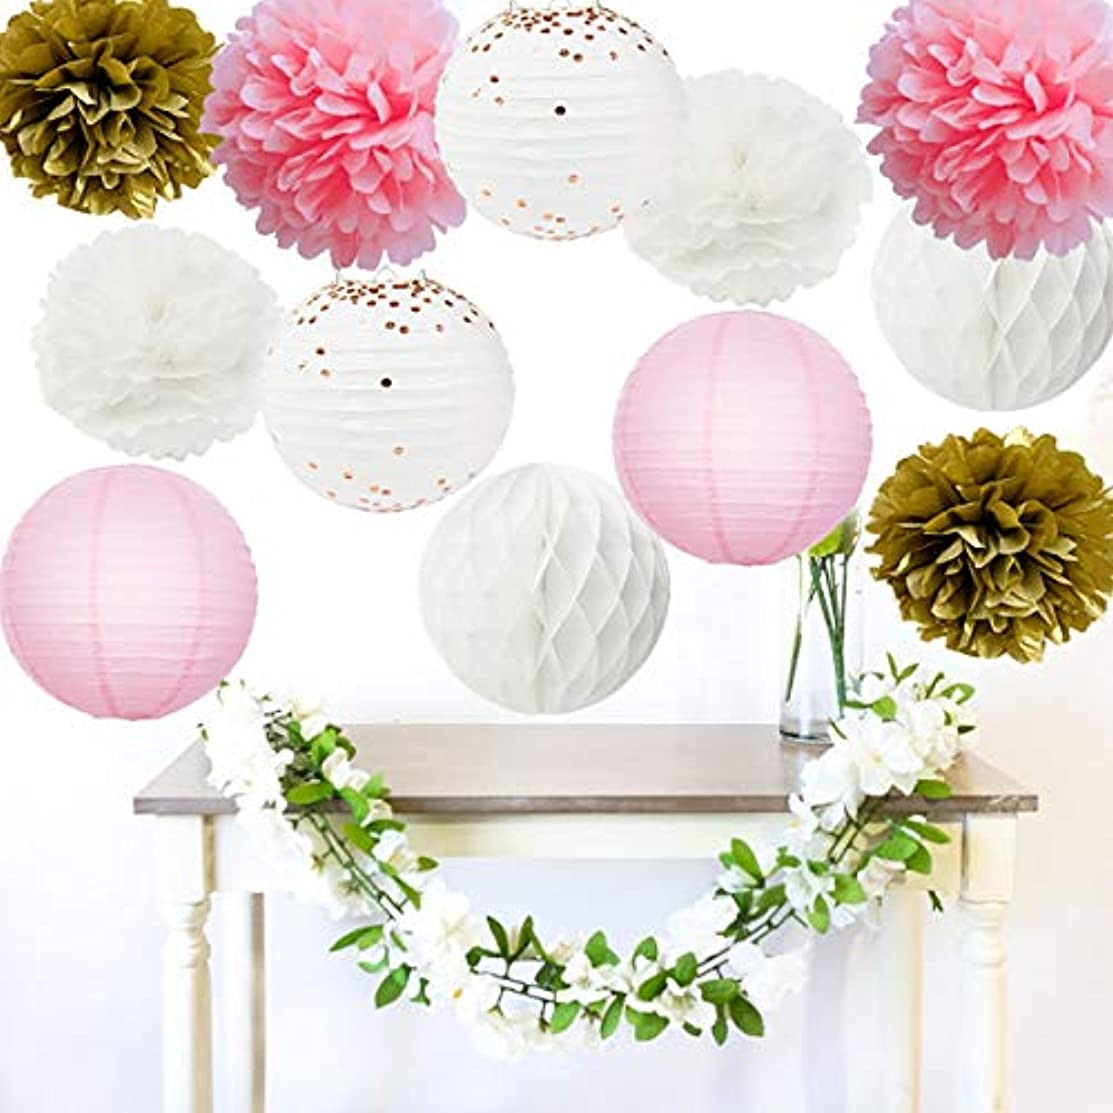 Furuix Baby Shower Decorations 12pcs Pink Gold Party Decorations Tissue Paper Pom Pom Champagne Polka Dot Paper Lanterns for One Year Old Girls' Princess Birthday Decorations